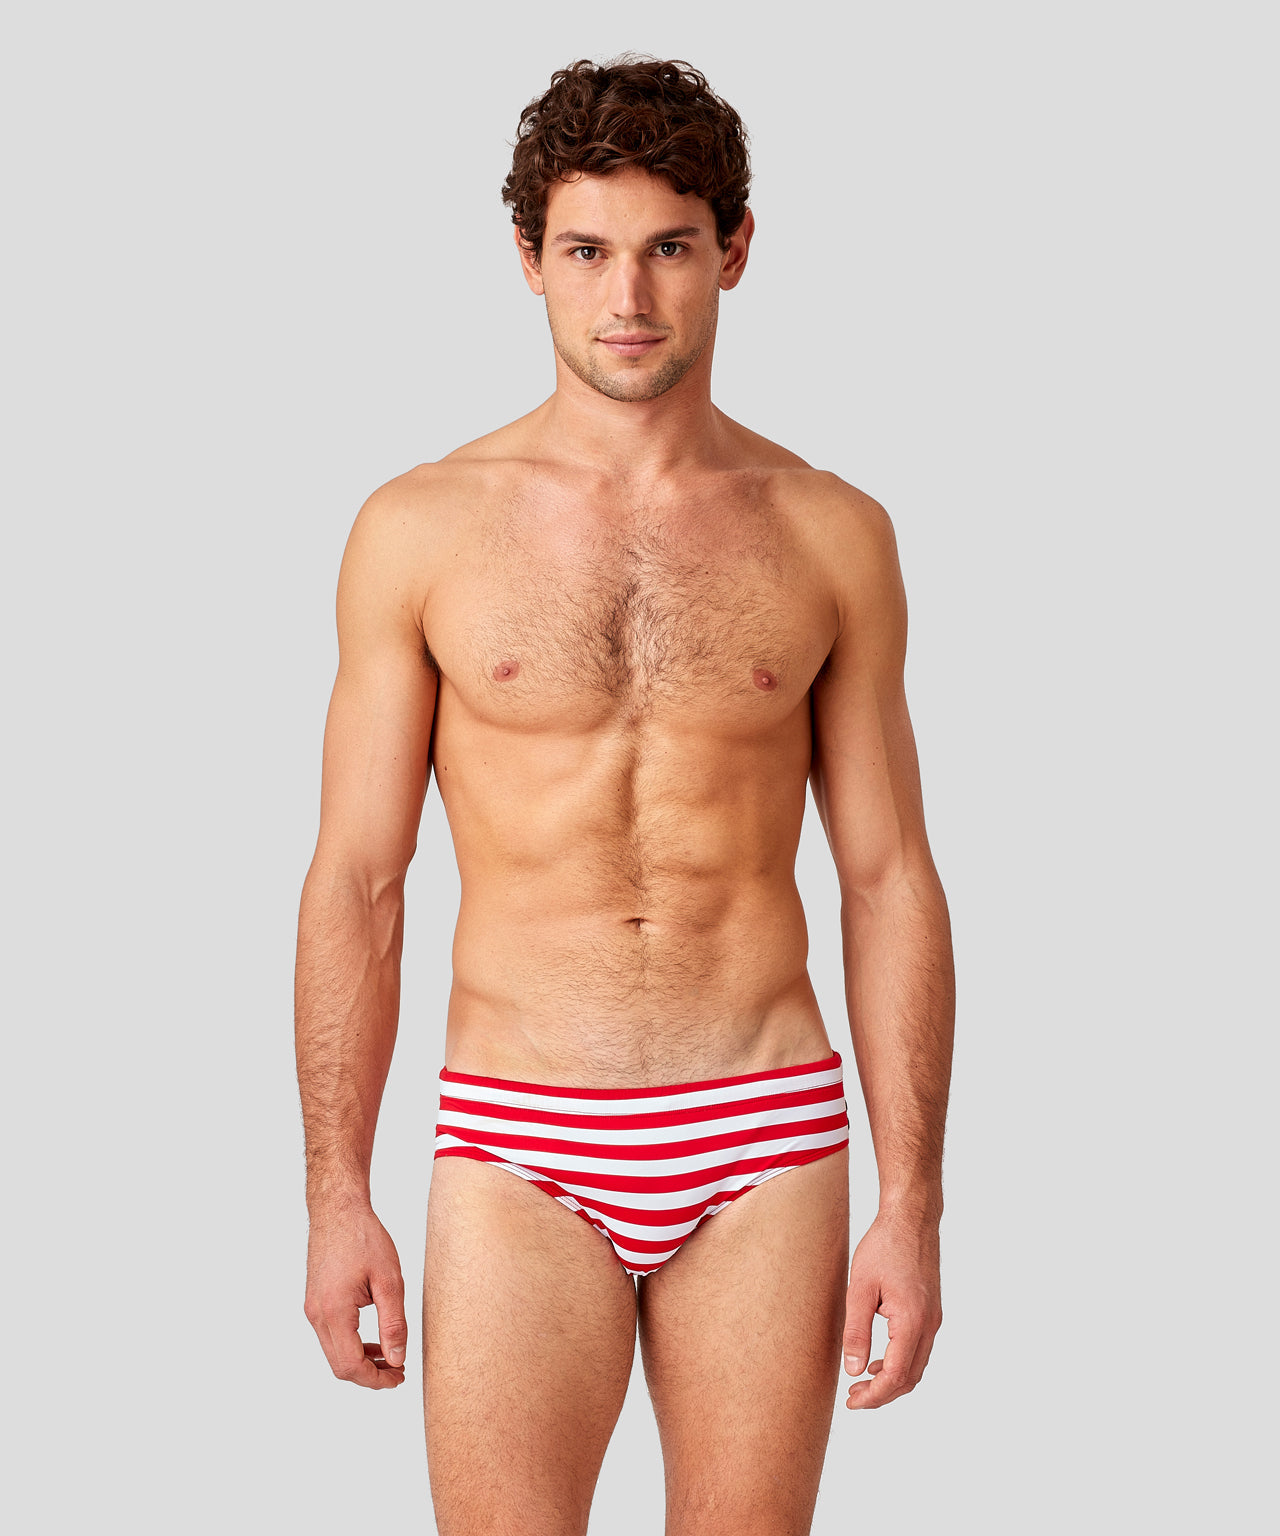 Swim Briefs Horizontal Stripes - red/white